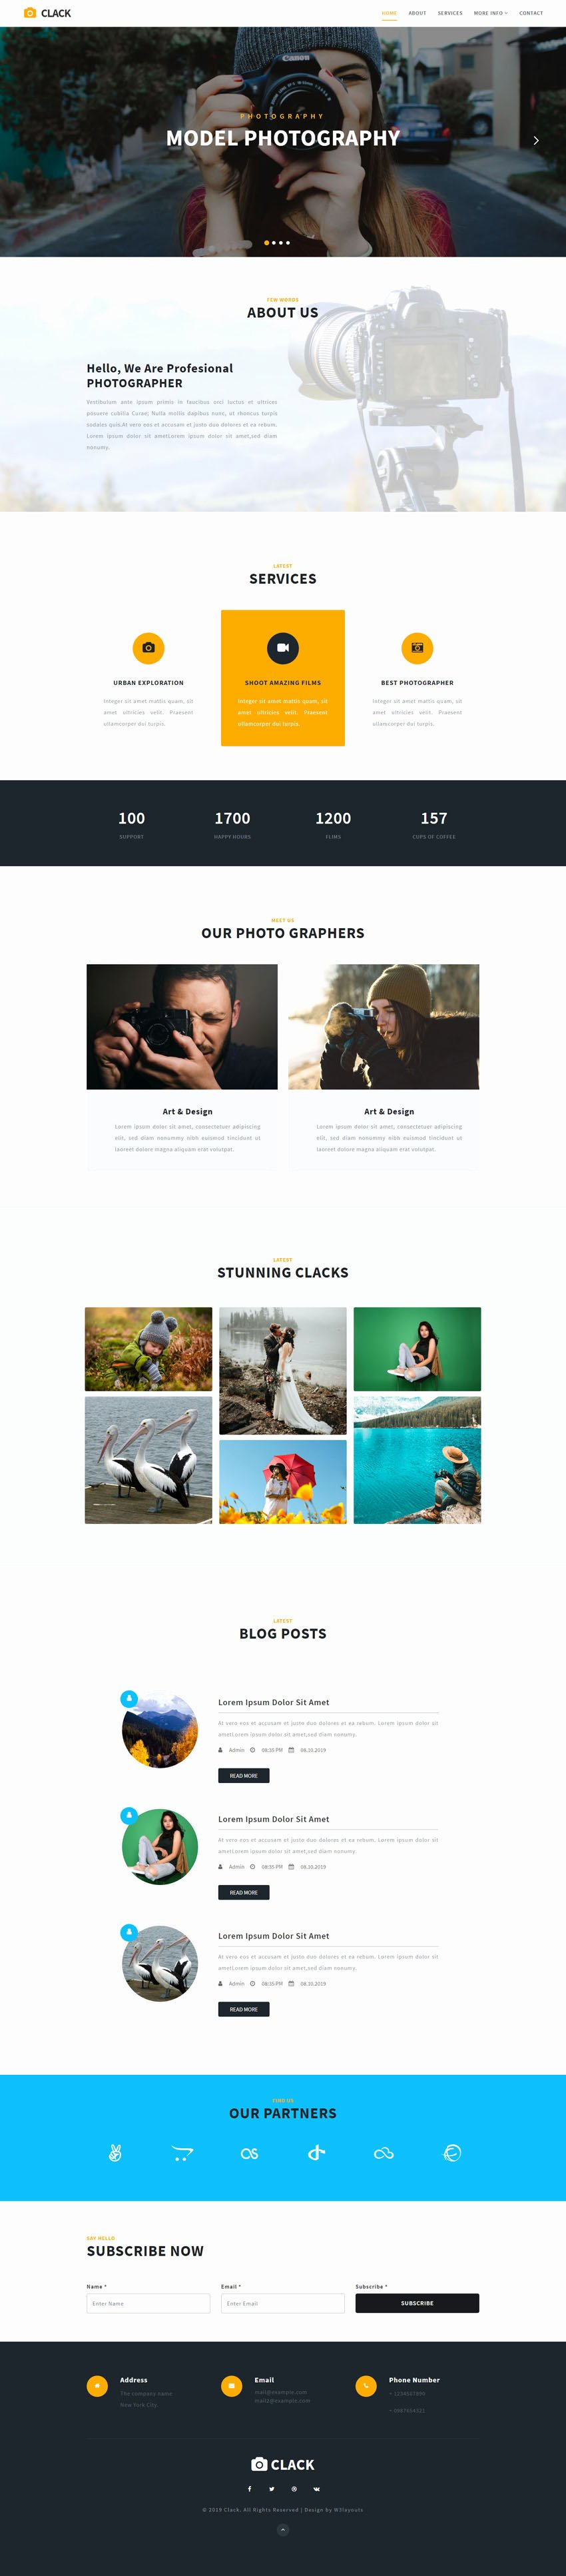 Photo Gallery Website Template Fresh Clack Gallery Bootstrap Responsive Web Template